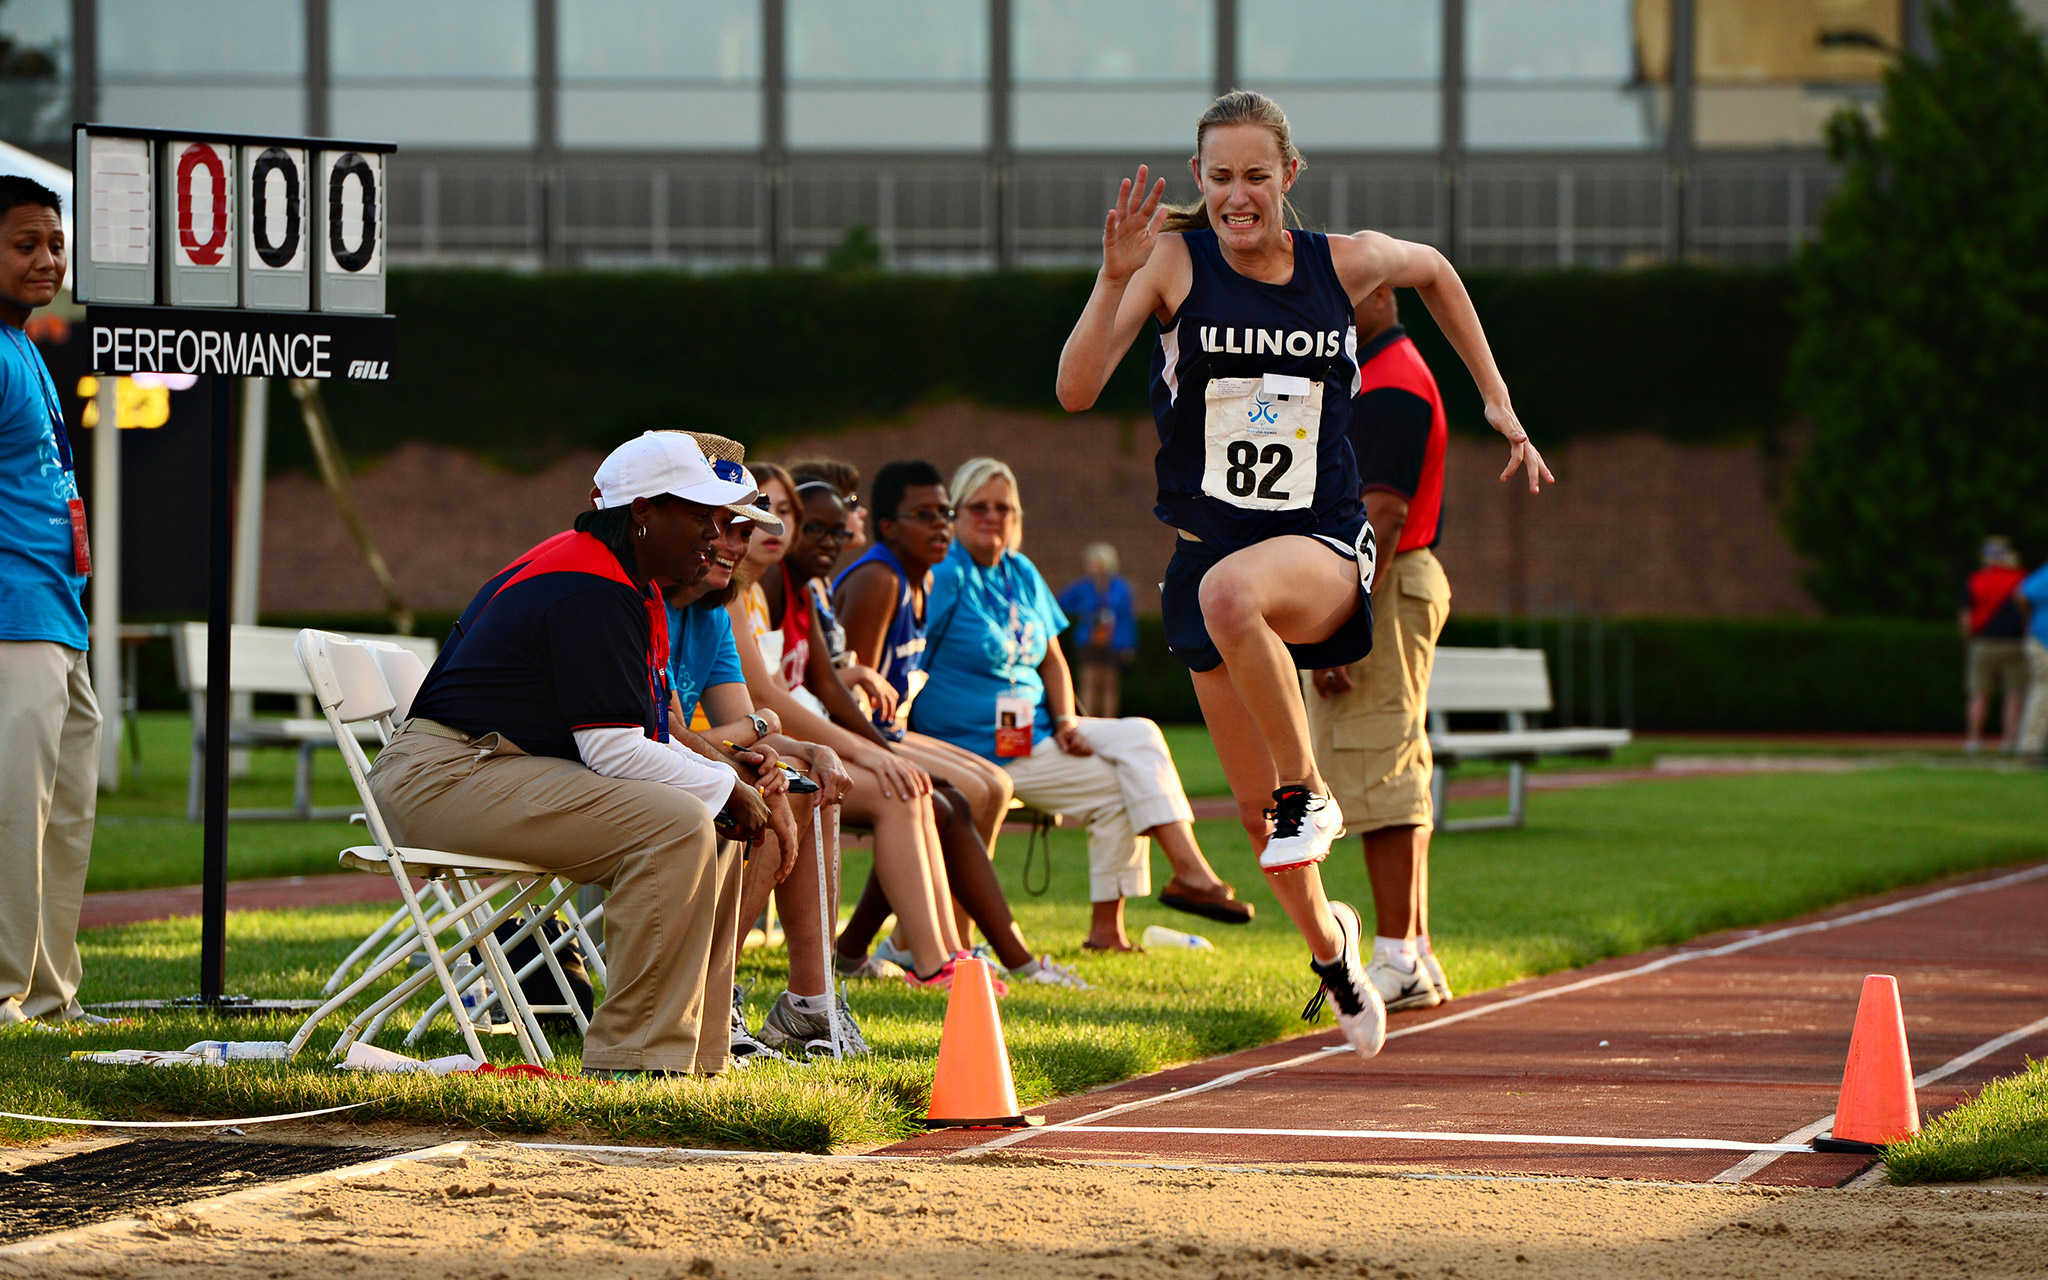 Illinois' Emily Eisenmenger soared to a silver medal in the running long jump at the 2014 Special Olympics USA Games.